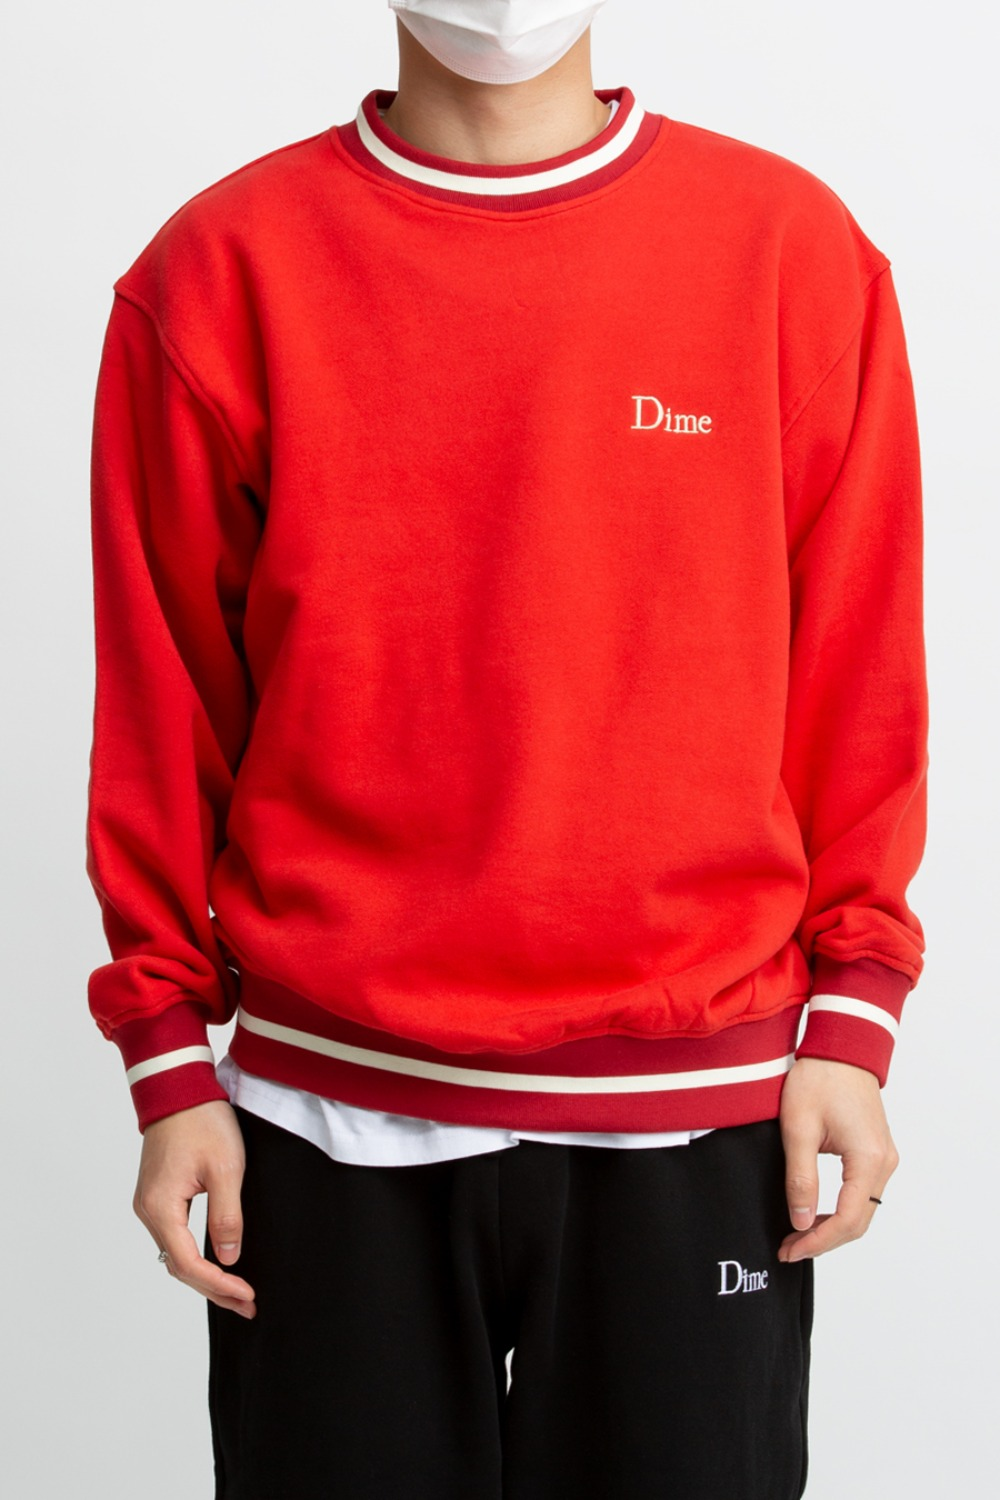 DIME CLASSIC FRENCH TERRY CREWNECK RED